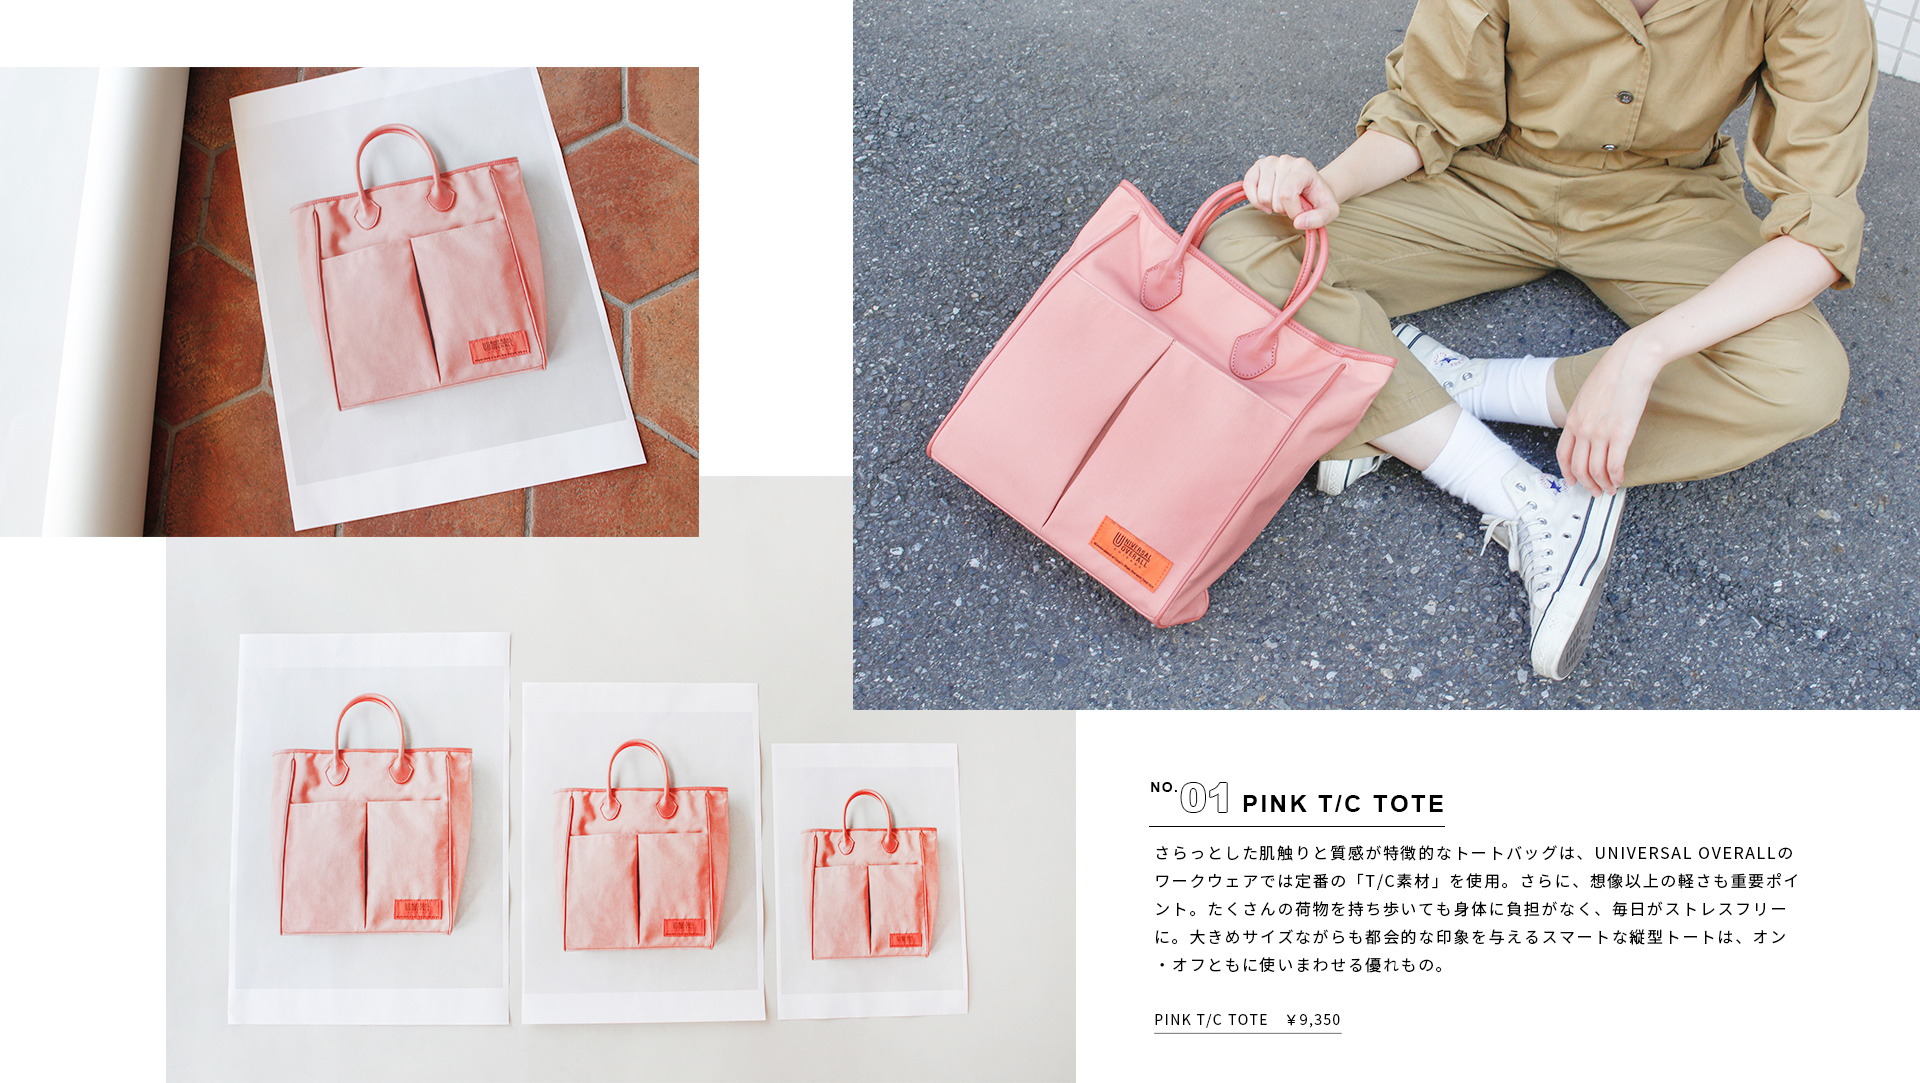 PINK T/C TOTE